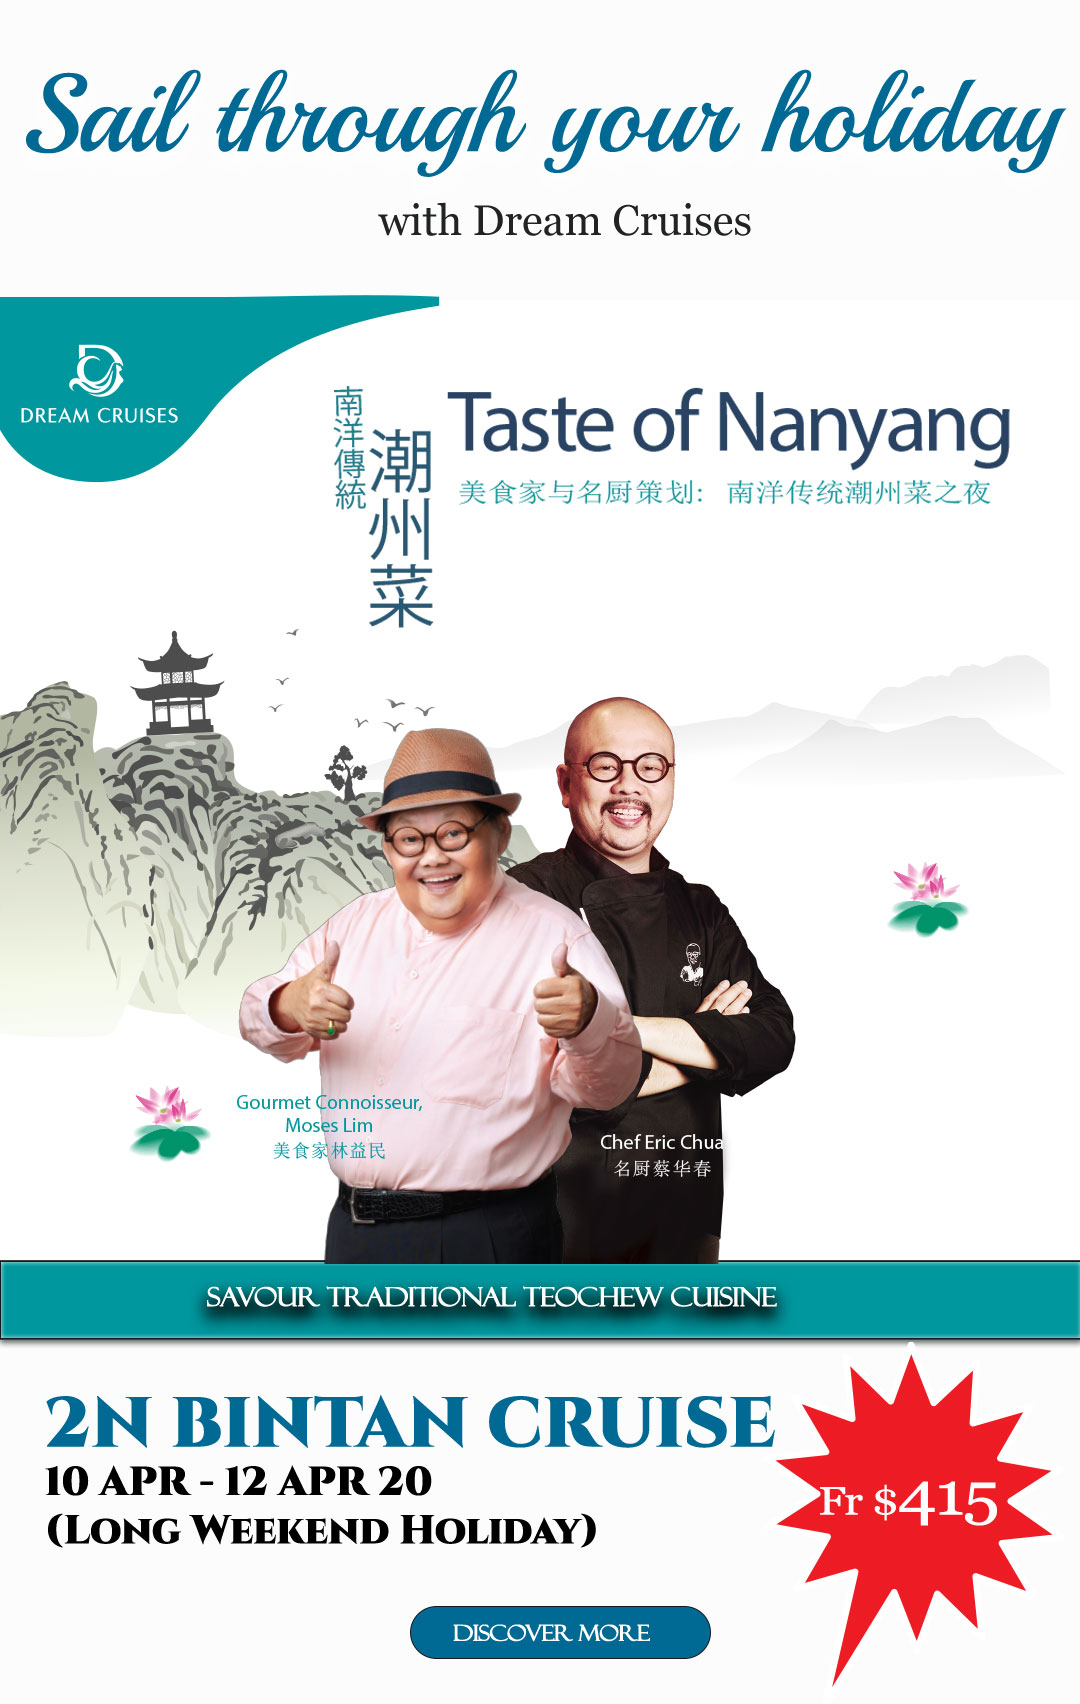 Taste-of-Nanyang-edm_01_latest.jpg